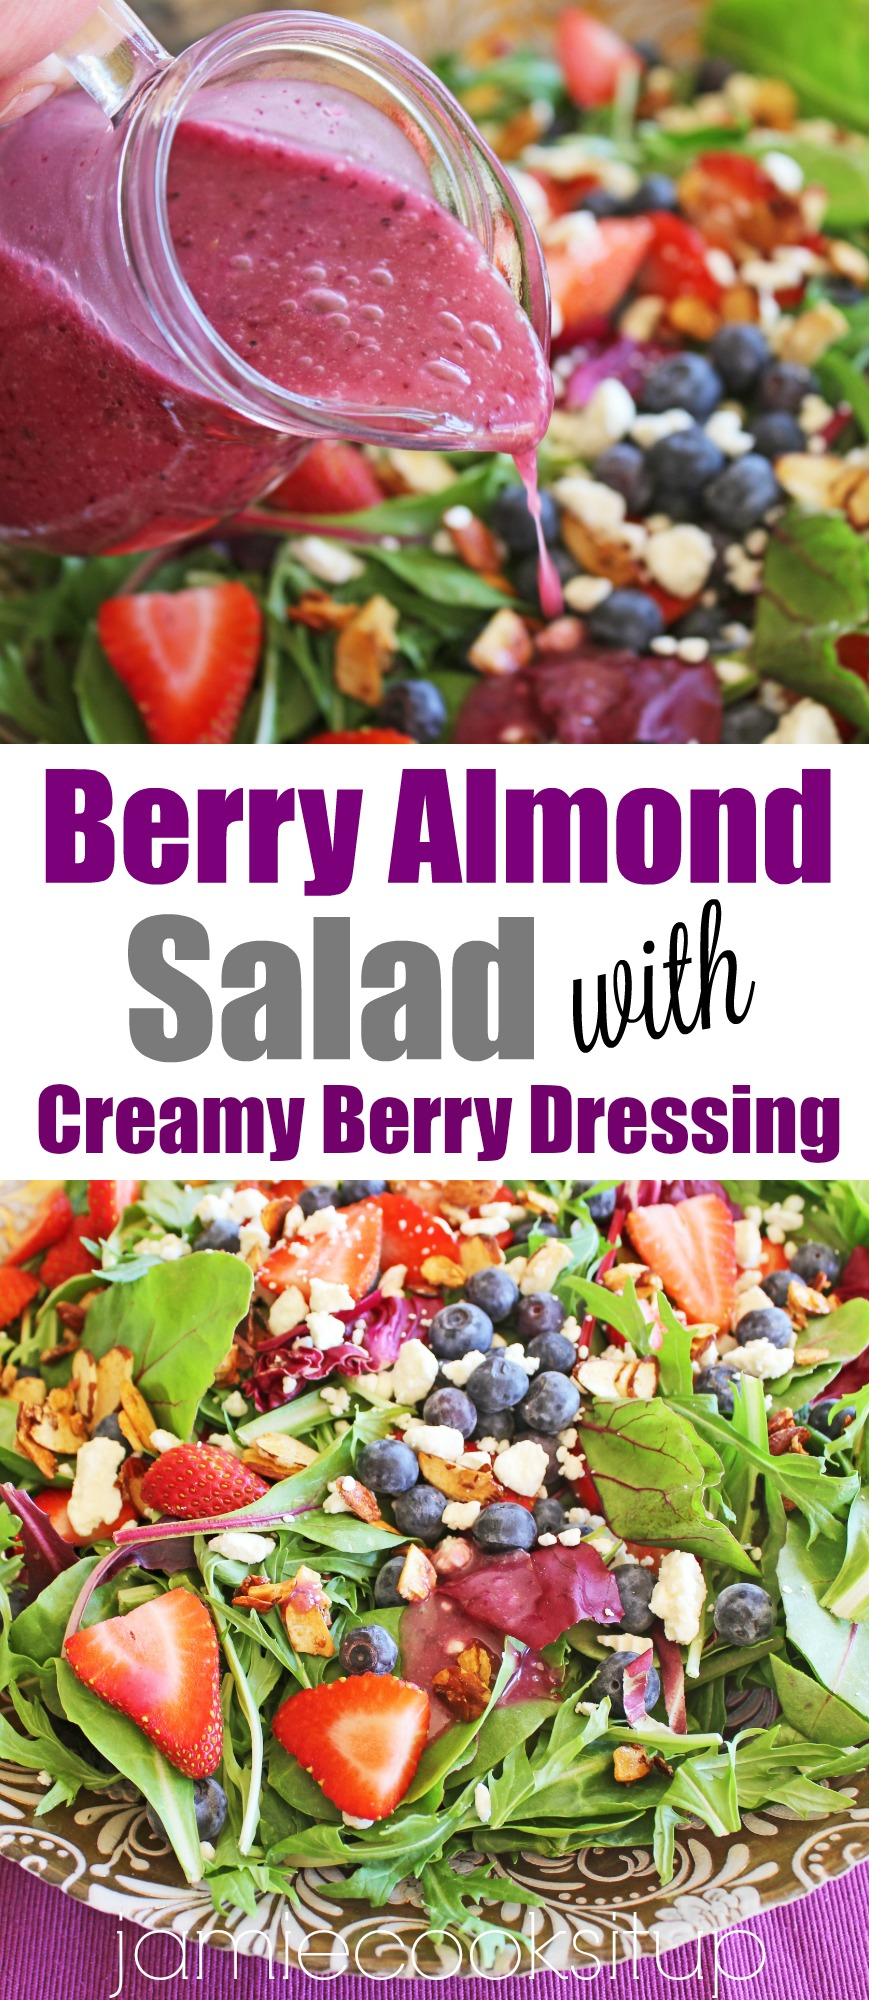 Berry Almond Salad with Creamy Berry Dressing Jamie Cooks It Up!